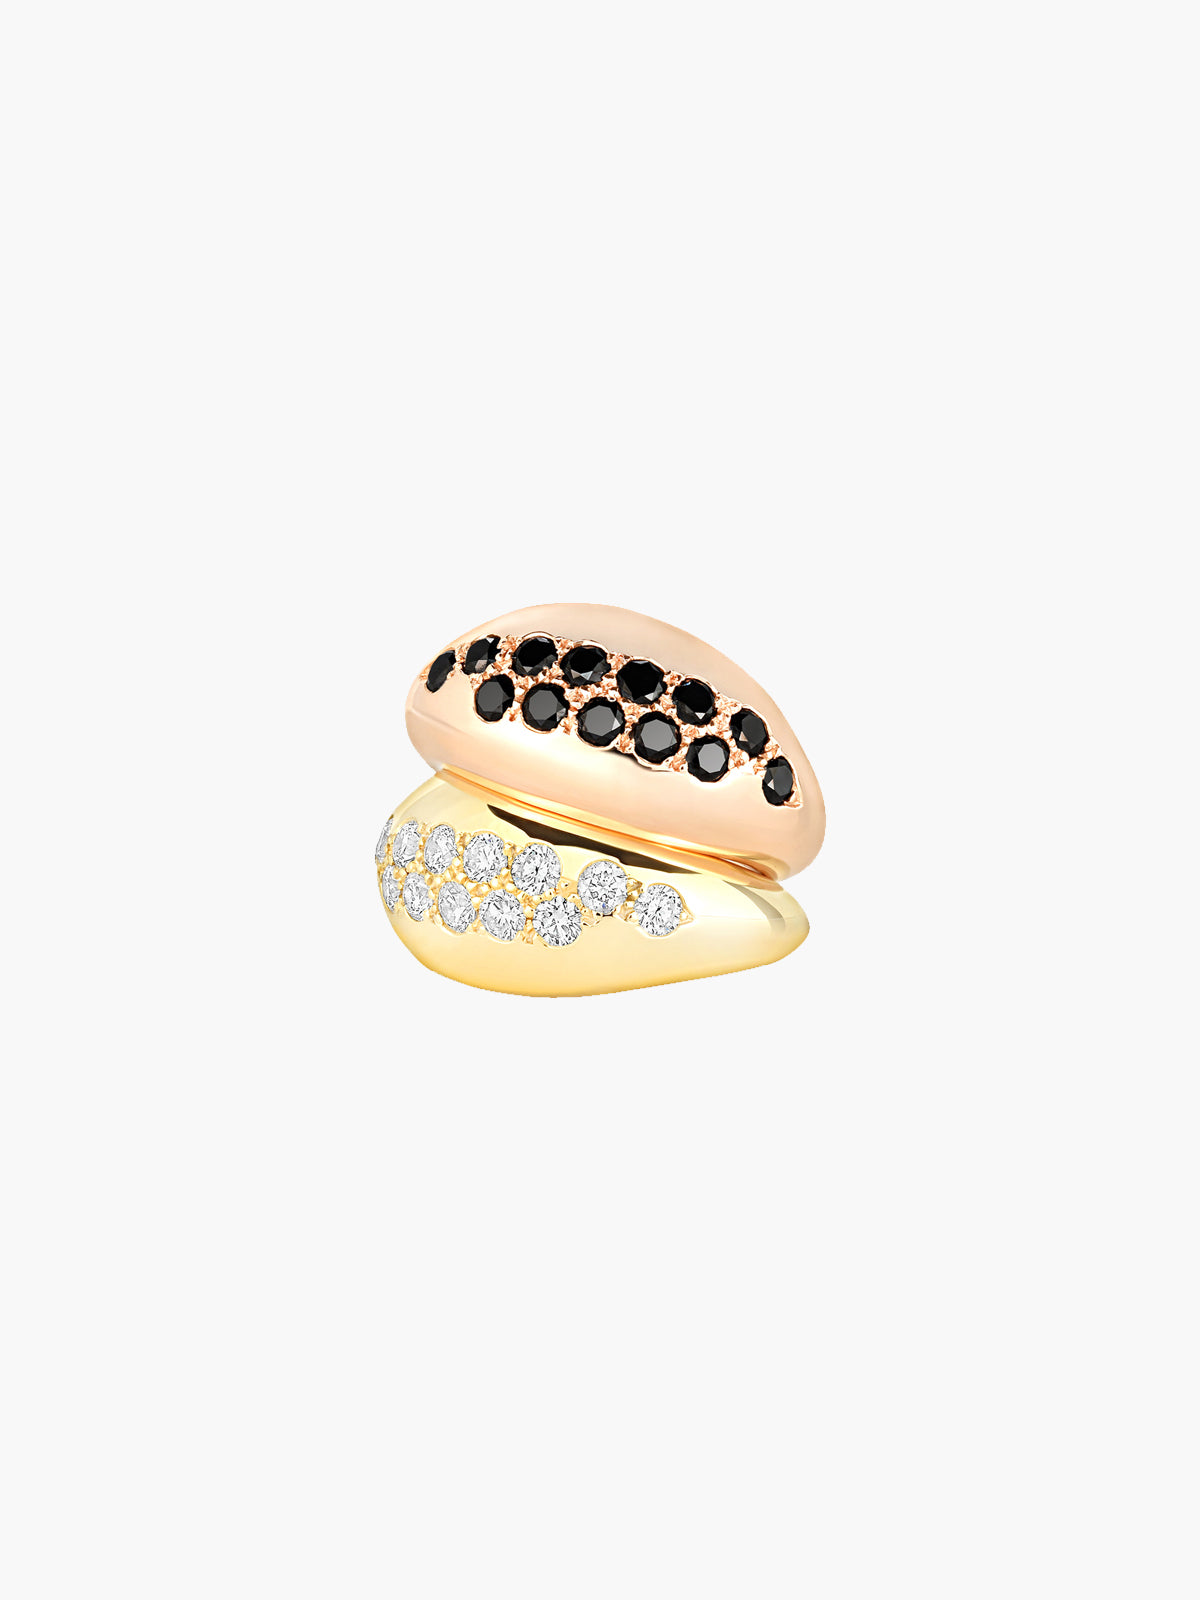 Sumerian Pinky Ring | Black Diamond Sumerian Pinky Ring | Black Diamond